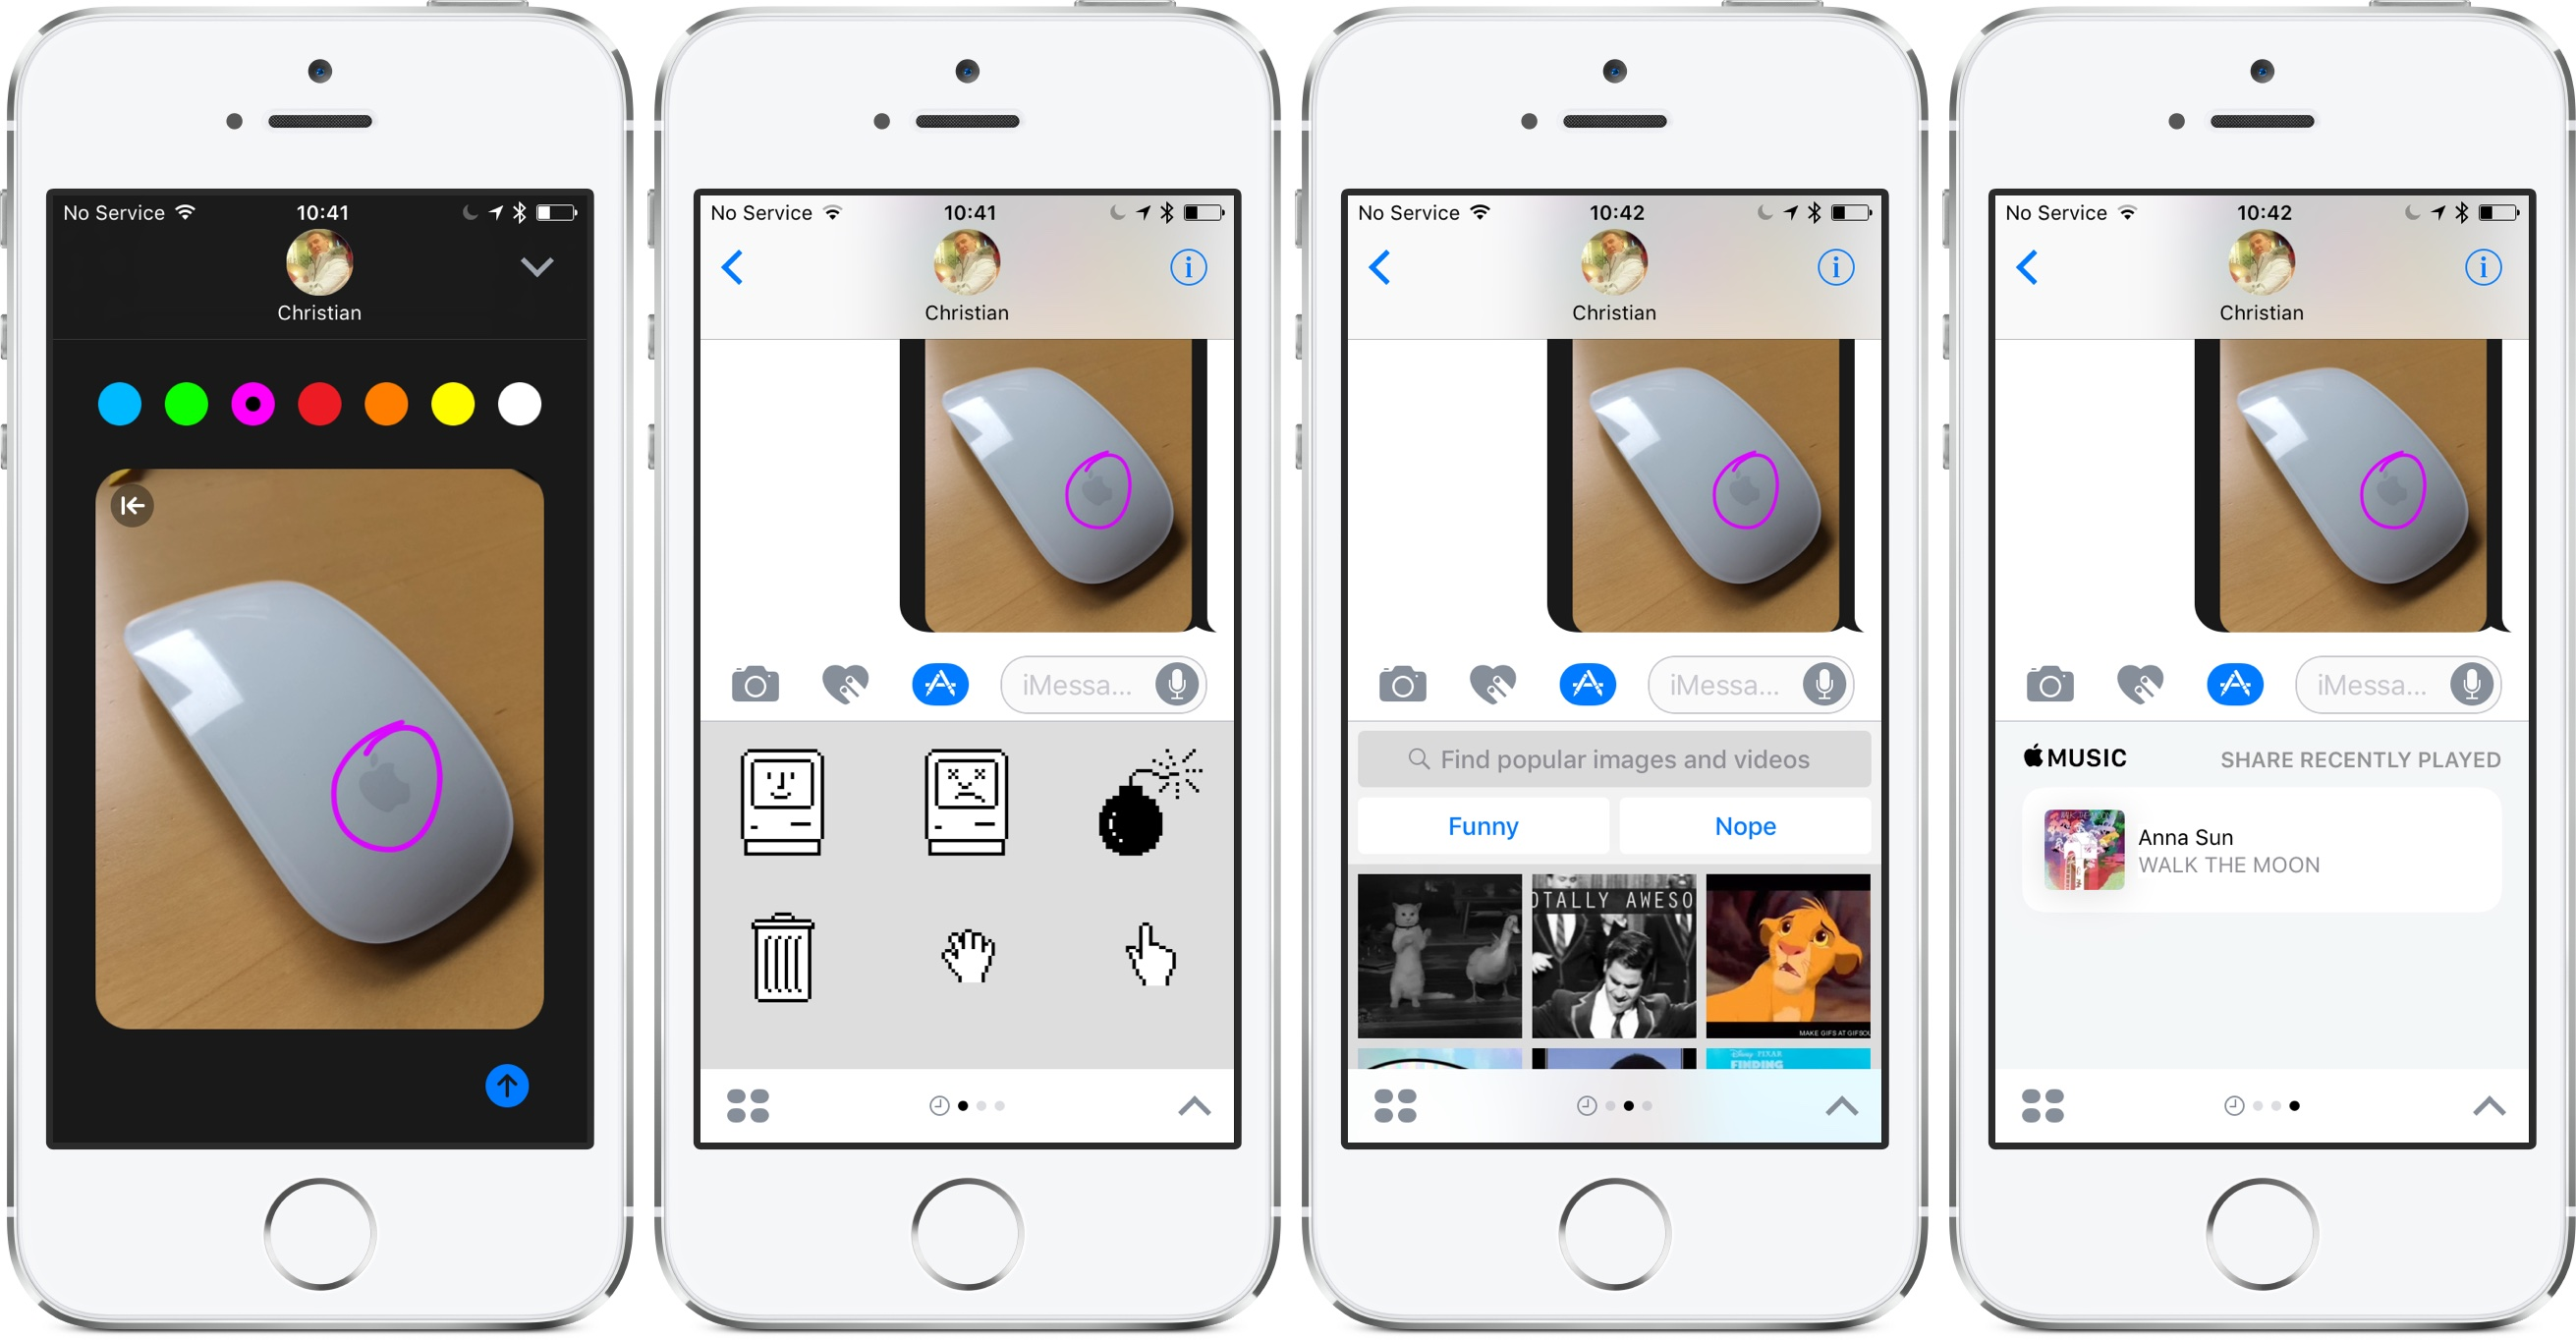 Tekenen in messenger